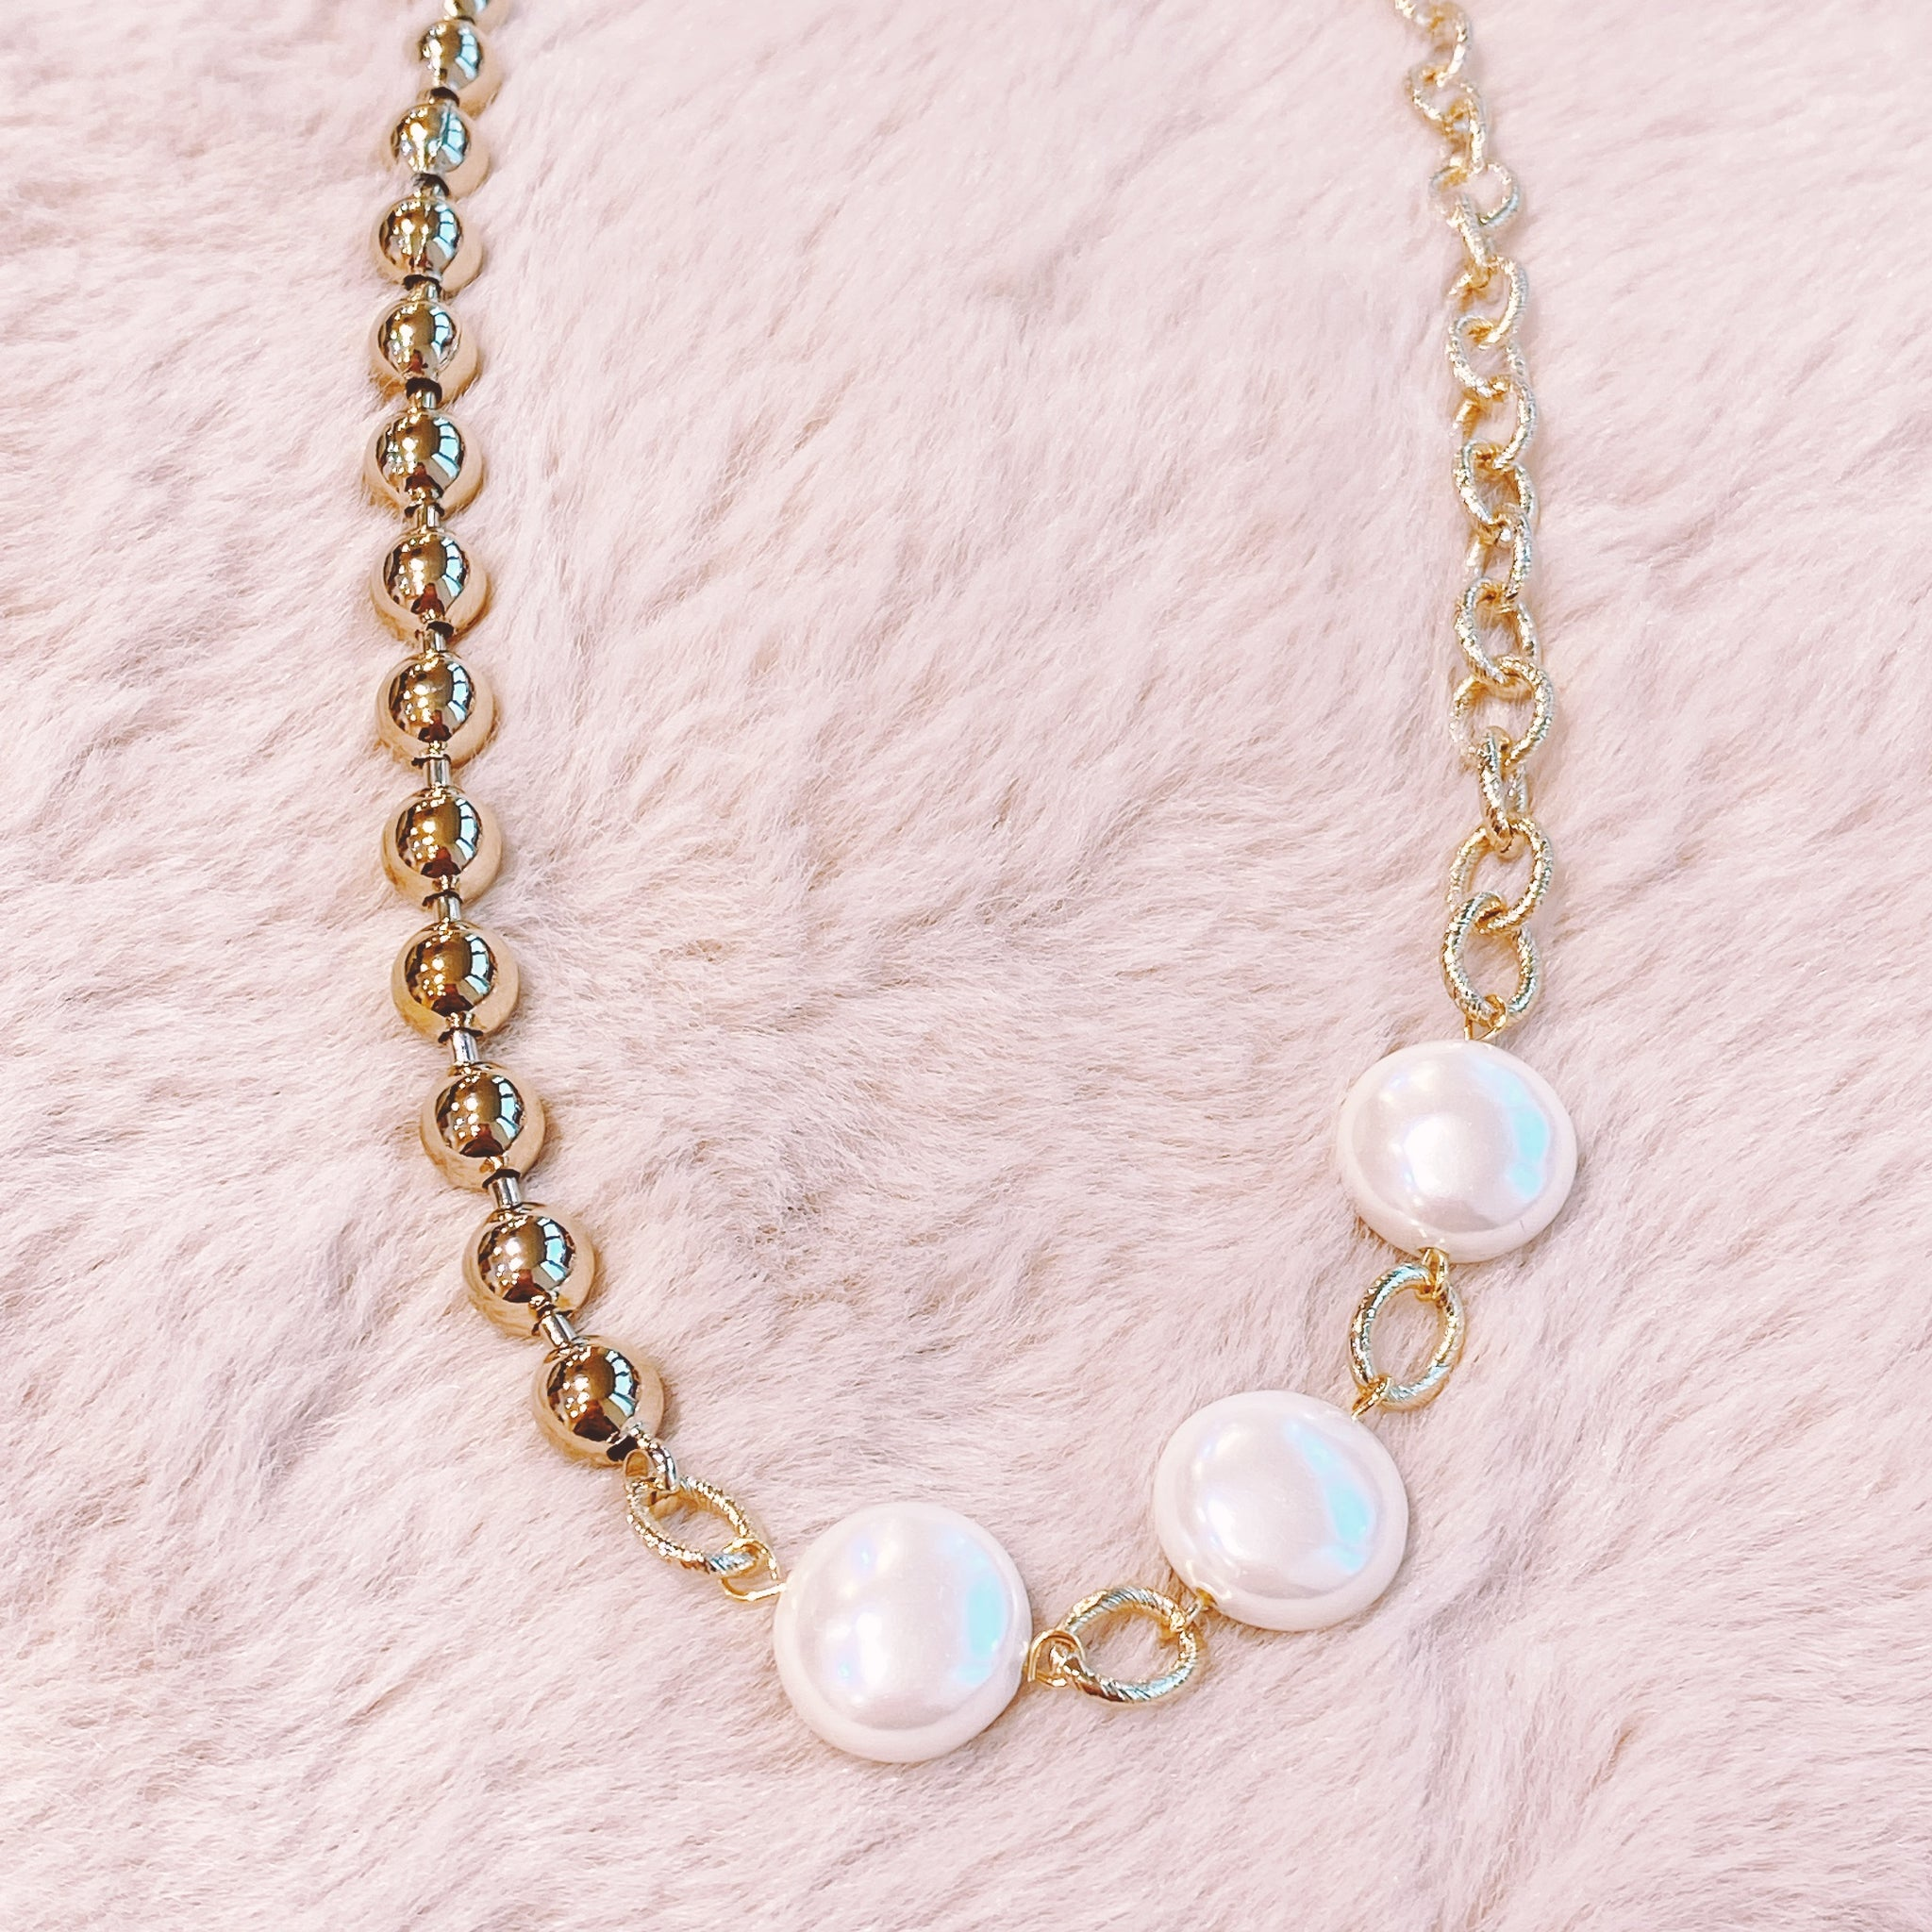 YBNE002  YB Pearls and Chain Necklace